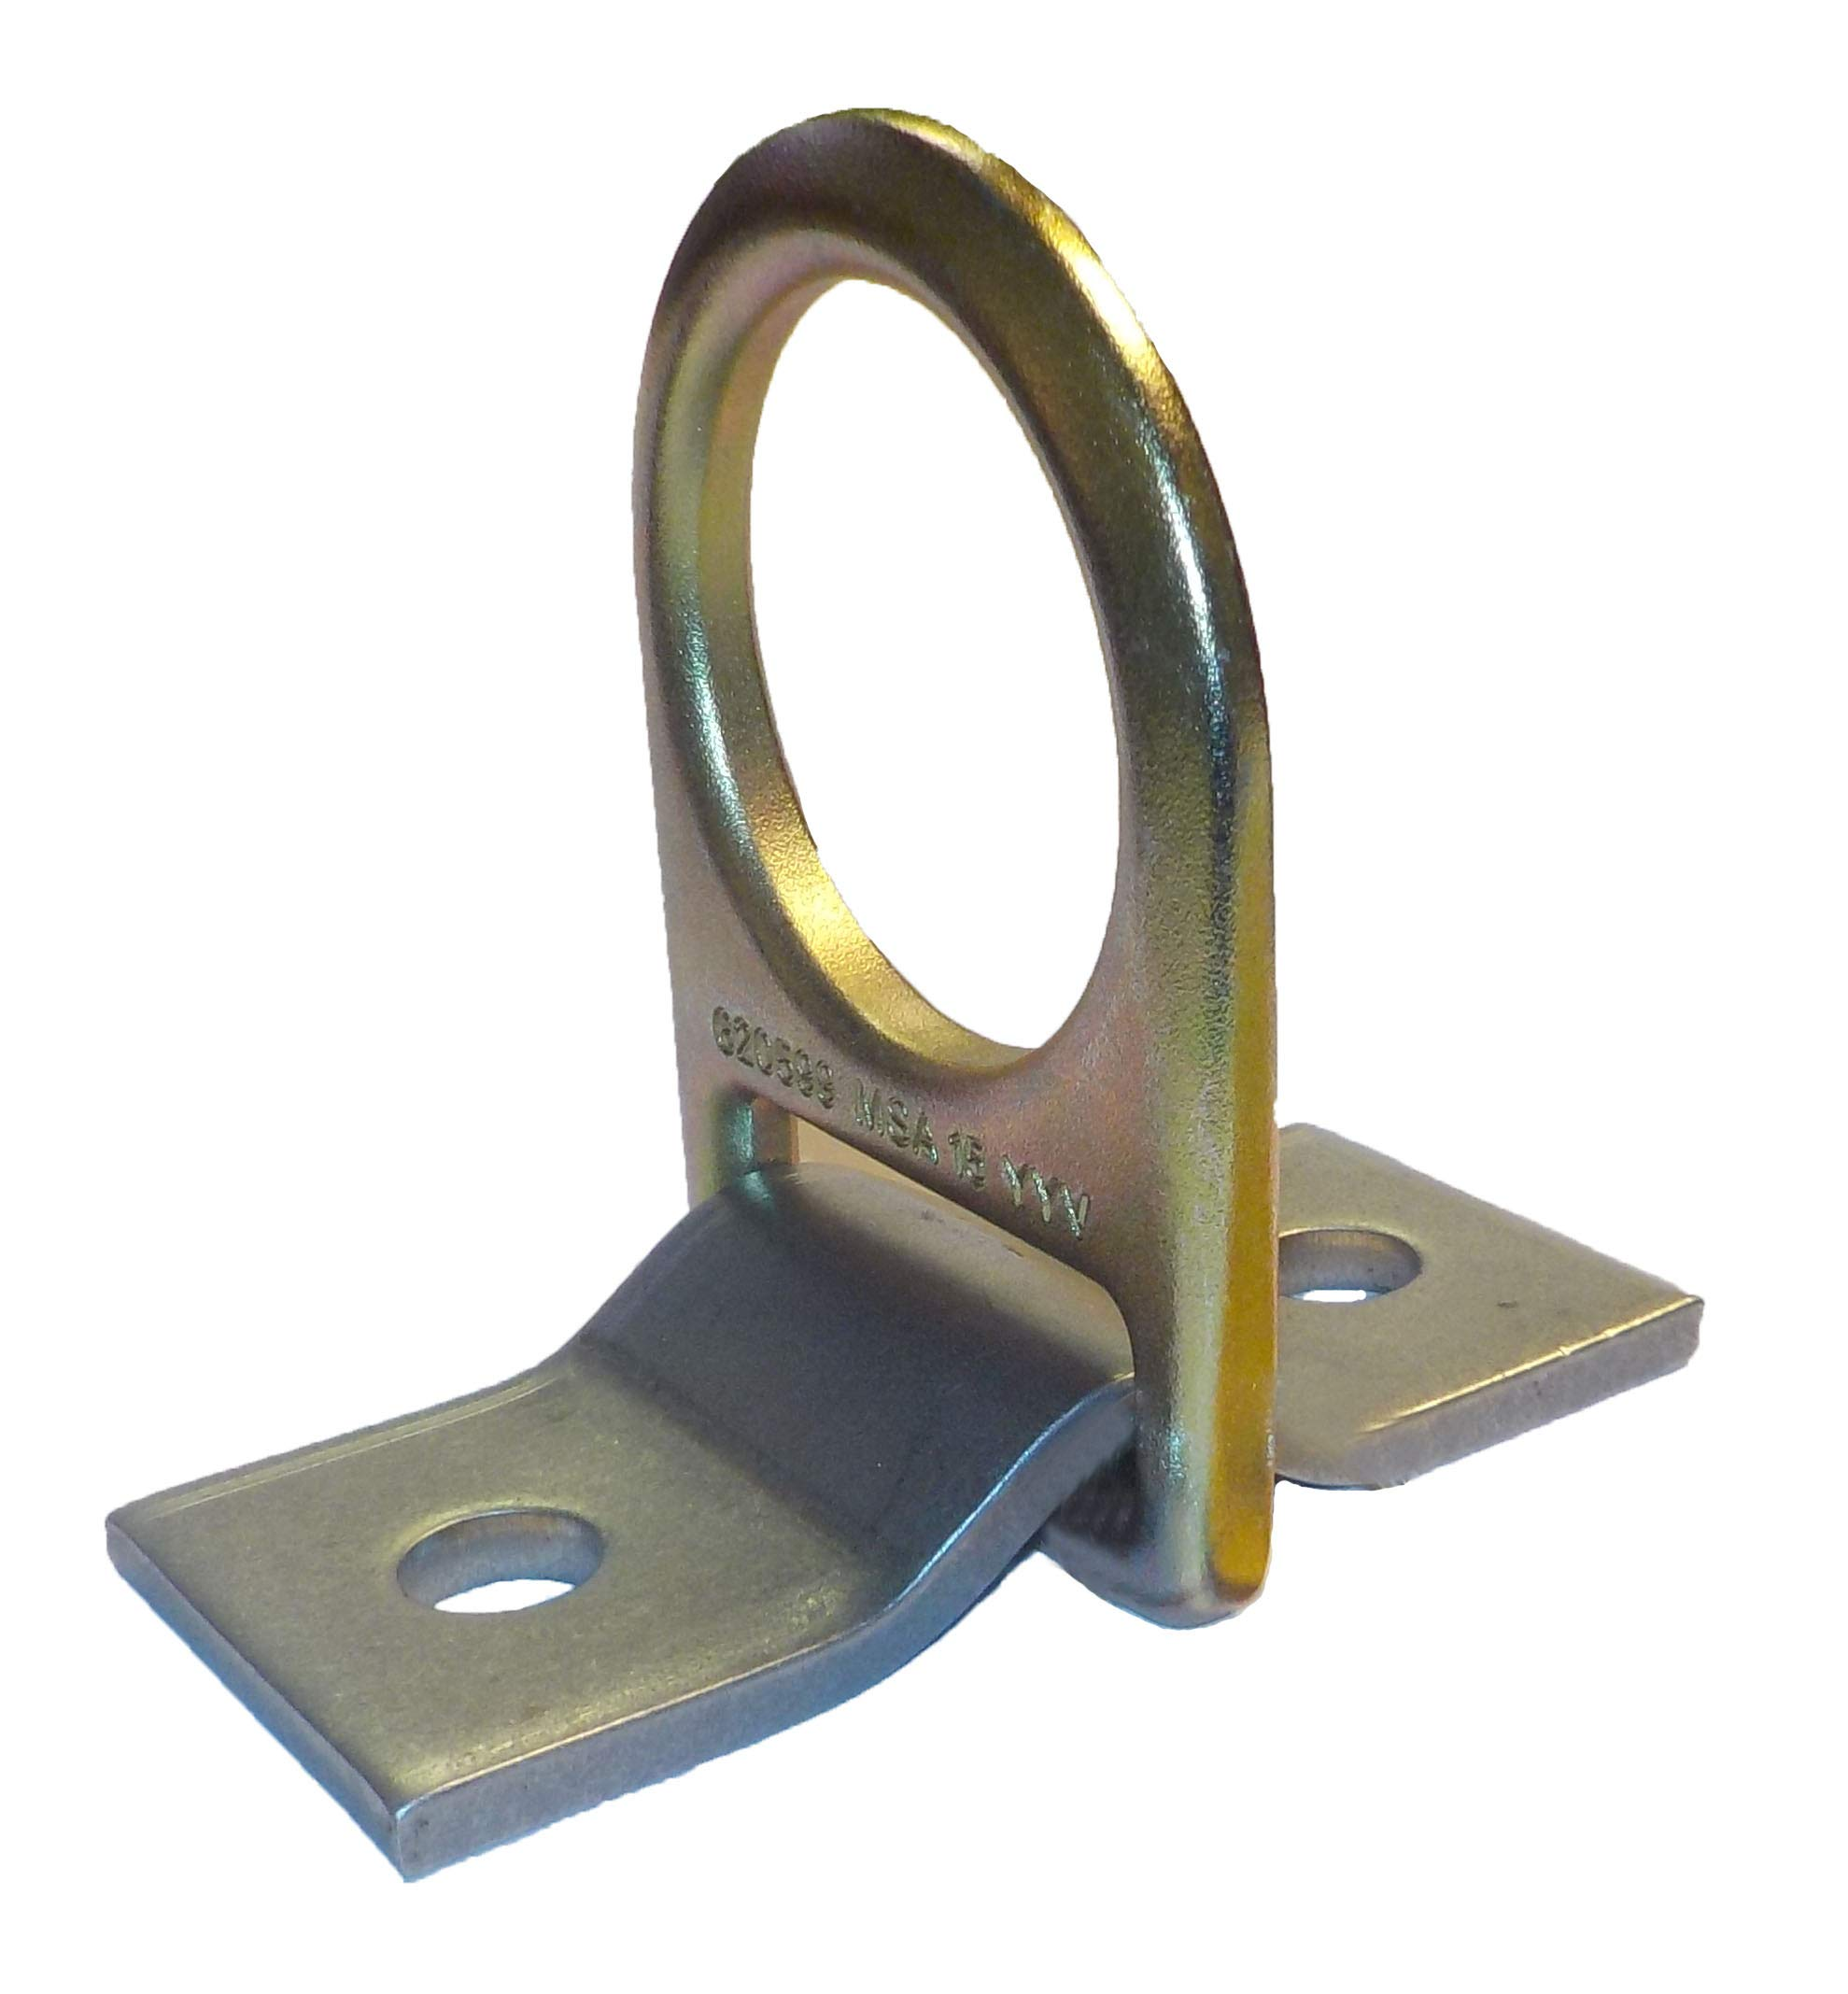 SafeWaze Floating D-Ring Anchor for Industrial and Construction Use, Fall Protection Device, OSHA/ANSI Compliant (FS888) by SafeWaze (Image #1)